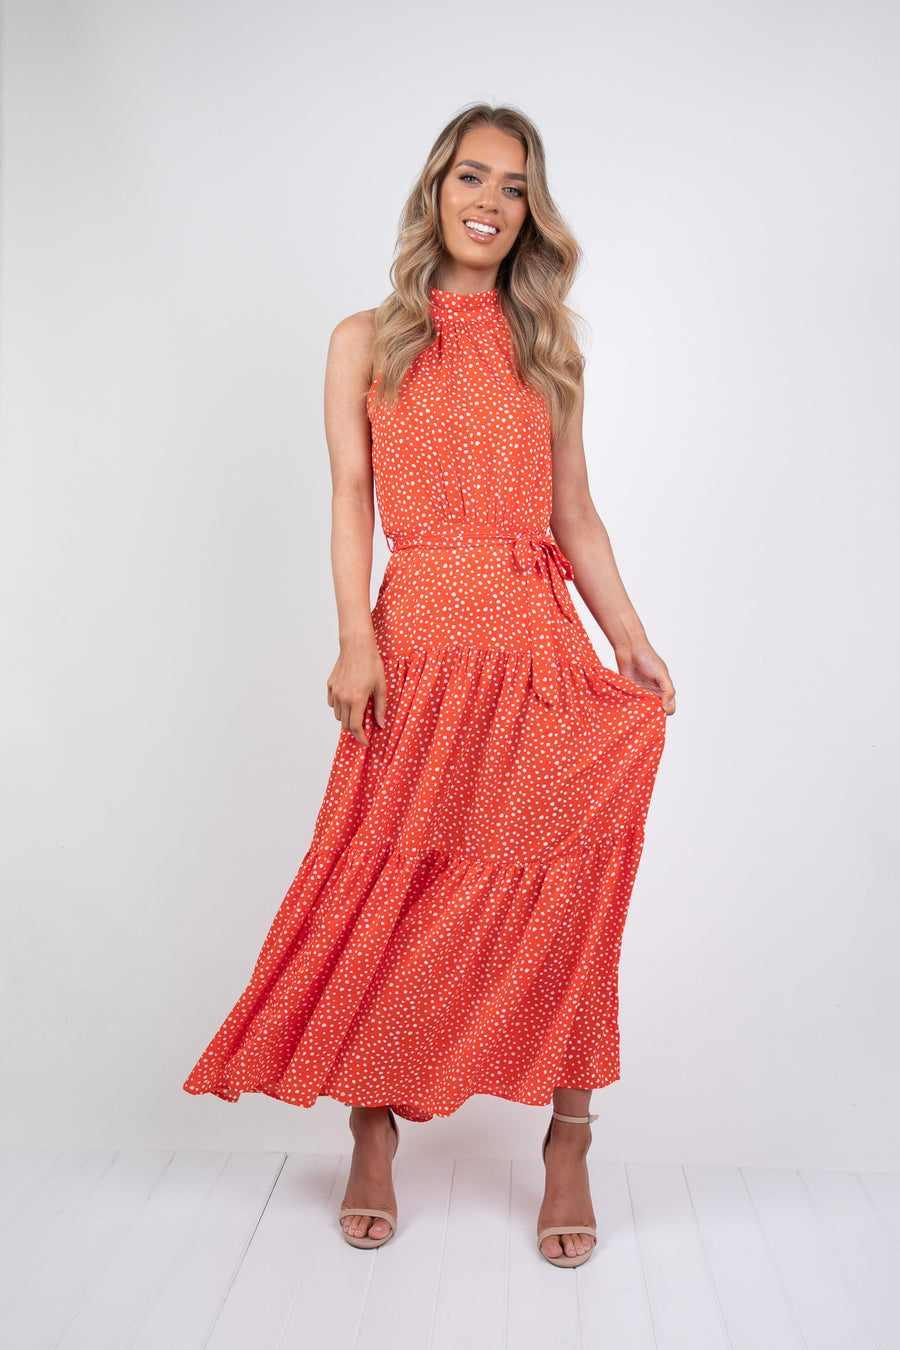 HAYDYN DRESS - RED PRINT